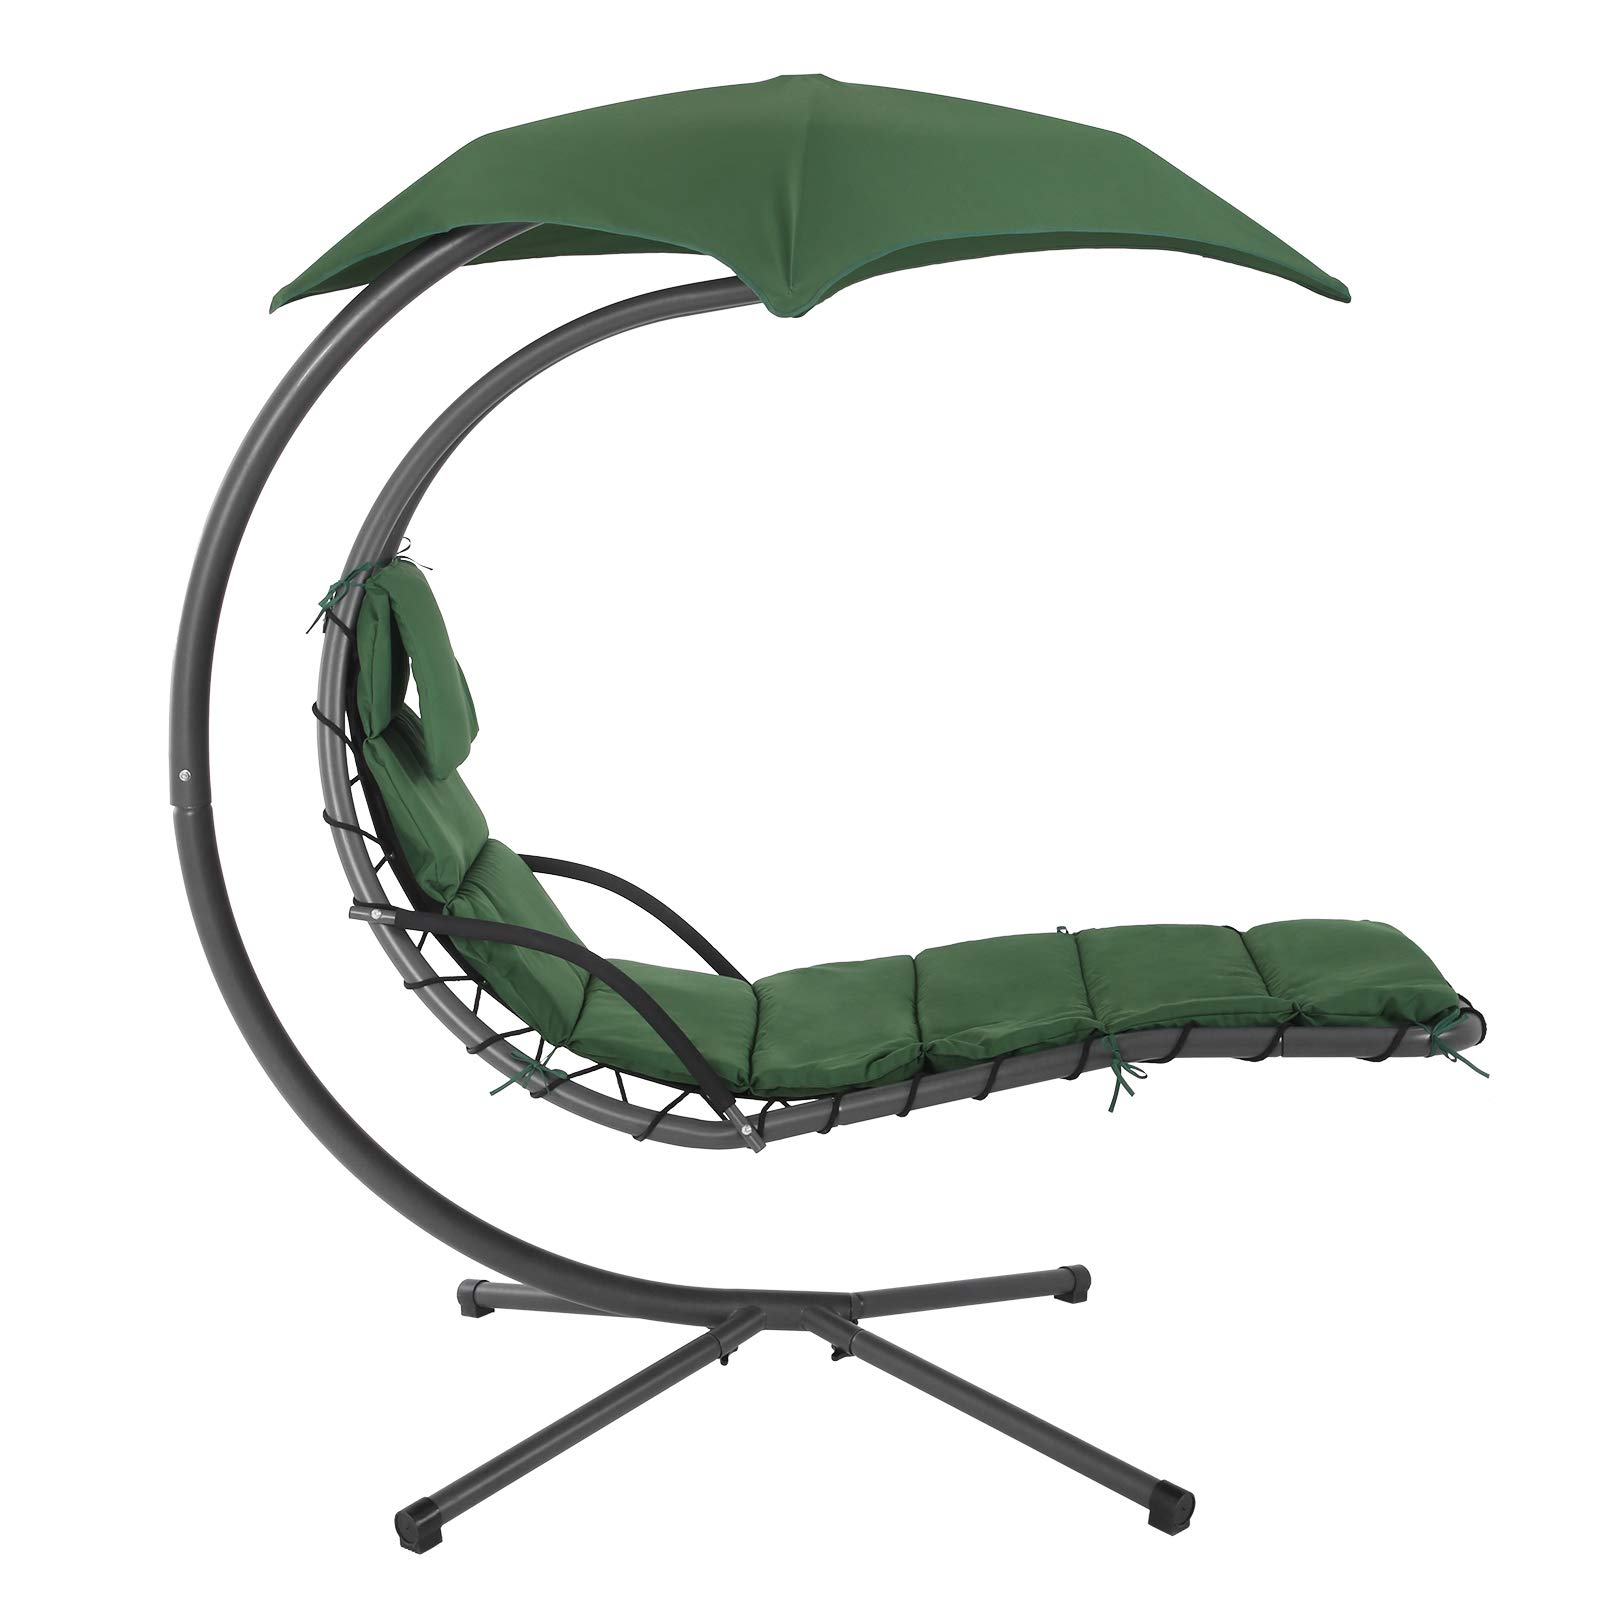 Songmics Hanging Lounger With Stand Sunshade Hanging Lounge Chair With 5 Cm Thick Cushion Swing Hammock Chair 150 Kg Load Capacity For Terrace Balcony Garden Dark Green Ghc10gn Buy Online In Aruba